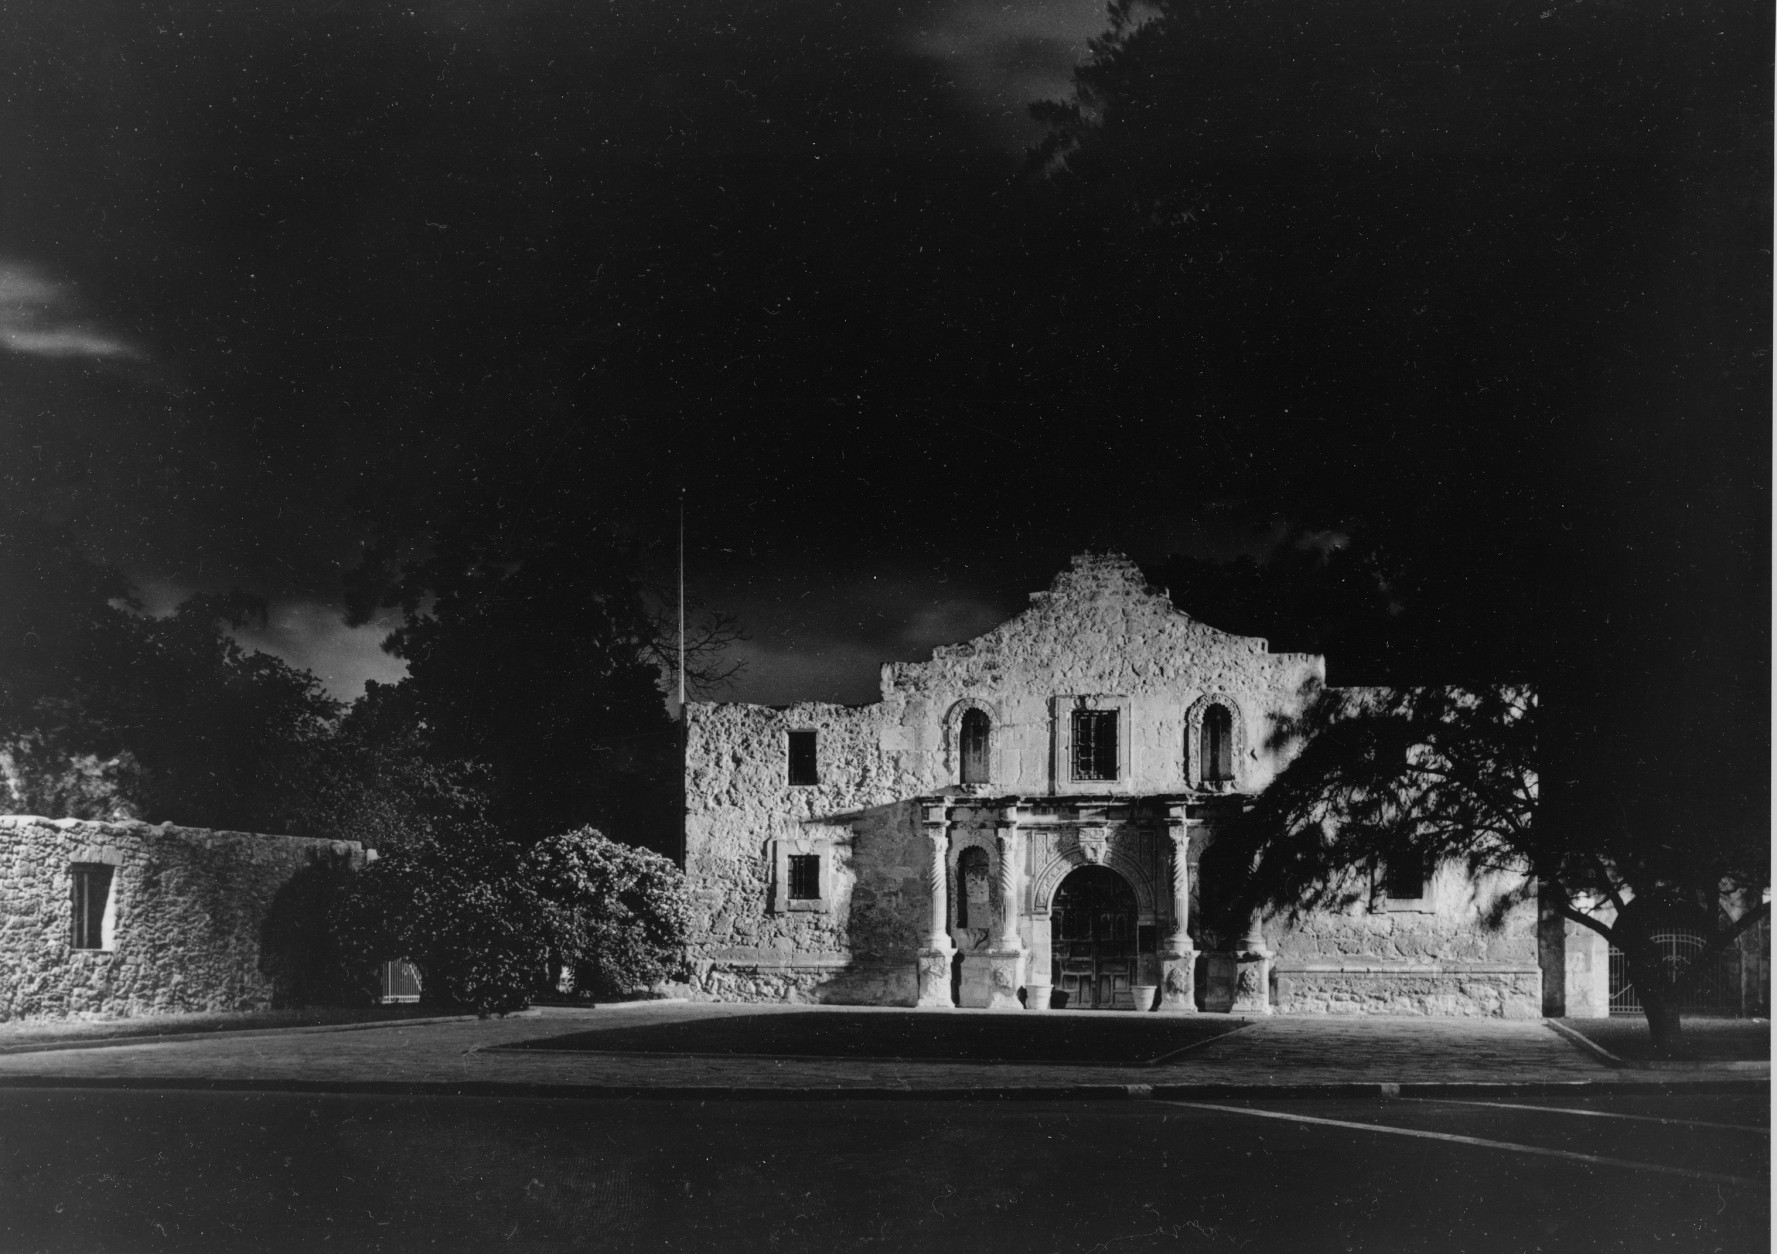 """FILE - In this Feb. 22, 1936 file photo, the chapel of Alamo, site of an heroic battle during the Texan war of independence from Mexico, is seen at nighttime in San Antonio. Built in the 18th century by Spanish missionaries looking to convert the local Native Americans, the Alamo gained its place in history in 1836, when about 200 Texas settlers died trying to defend the fort from Mexican forces. Among the dead: Davy Crockett, Jim Bowie and Lt. Col. William Travis, who promised never to surrender or retreat. The battle cry, """"Remember the Alamo!"""" helped inspire Texans to defeat the Mexican army a month later, securing Texas's independence. (AP Photo, File)"""